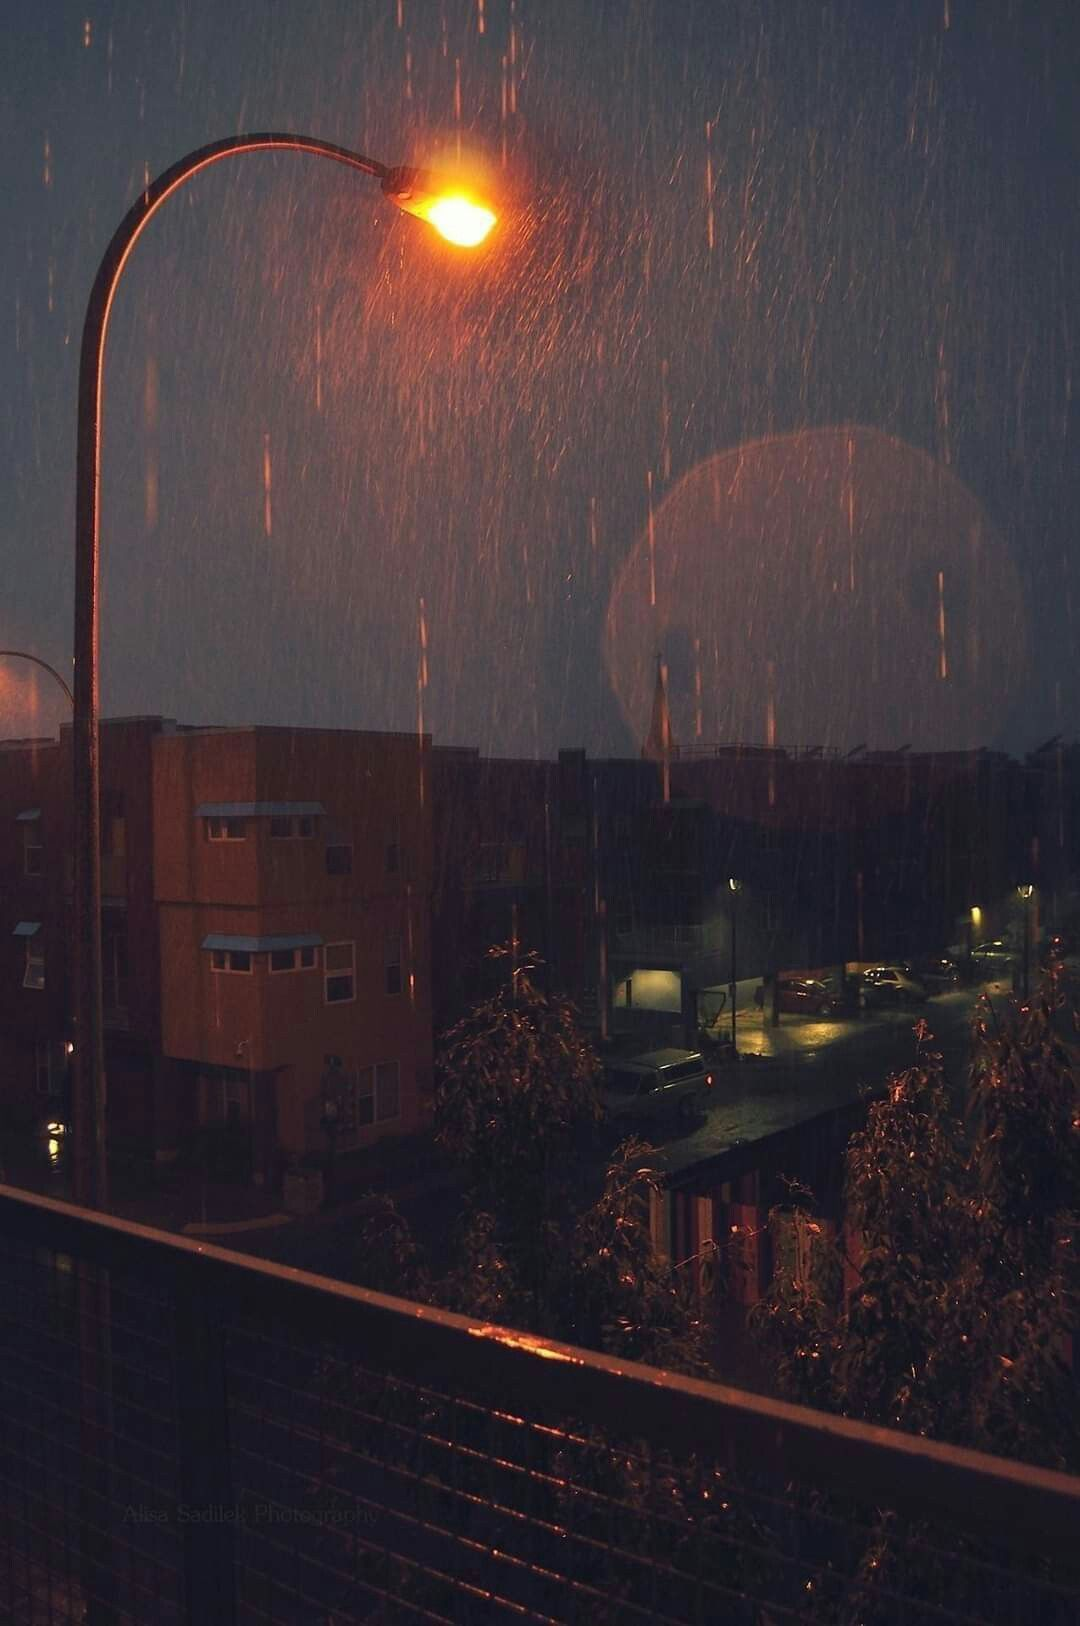 Pin By Andrew D Amato On Boujee Aesthetic In 2020 Rain